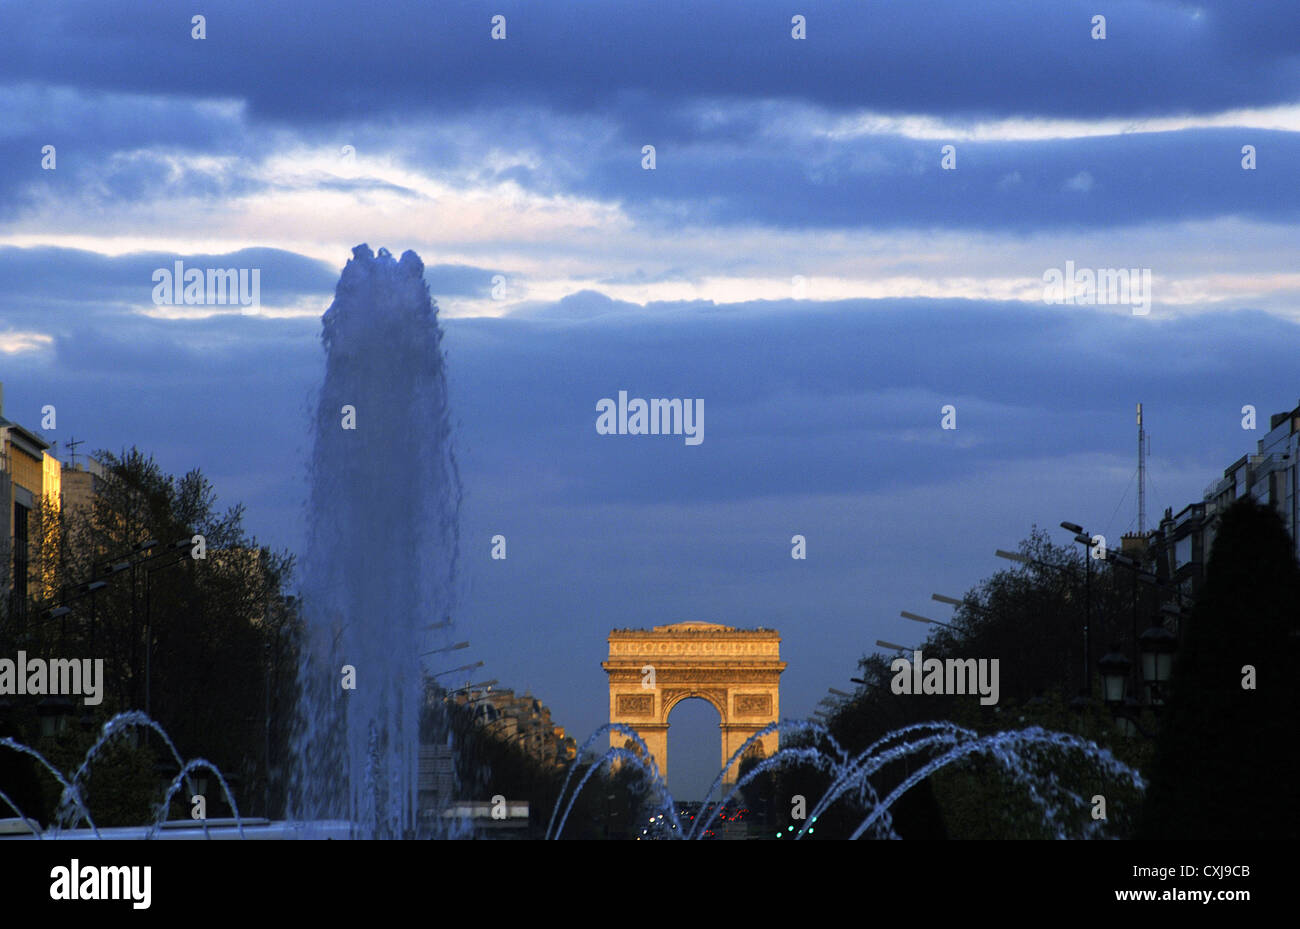 France. Paris. Night view of the Champs Elysees with the Triumphal Arch in the background. - Stock Image